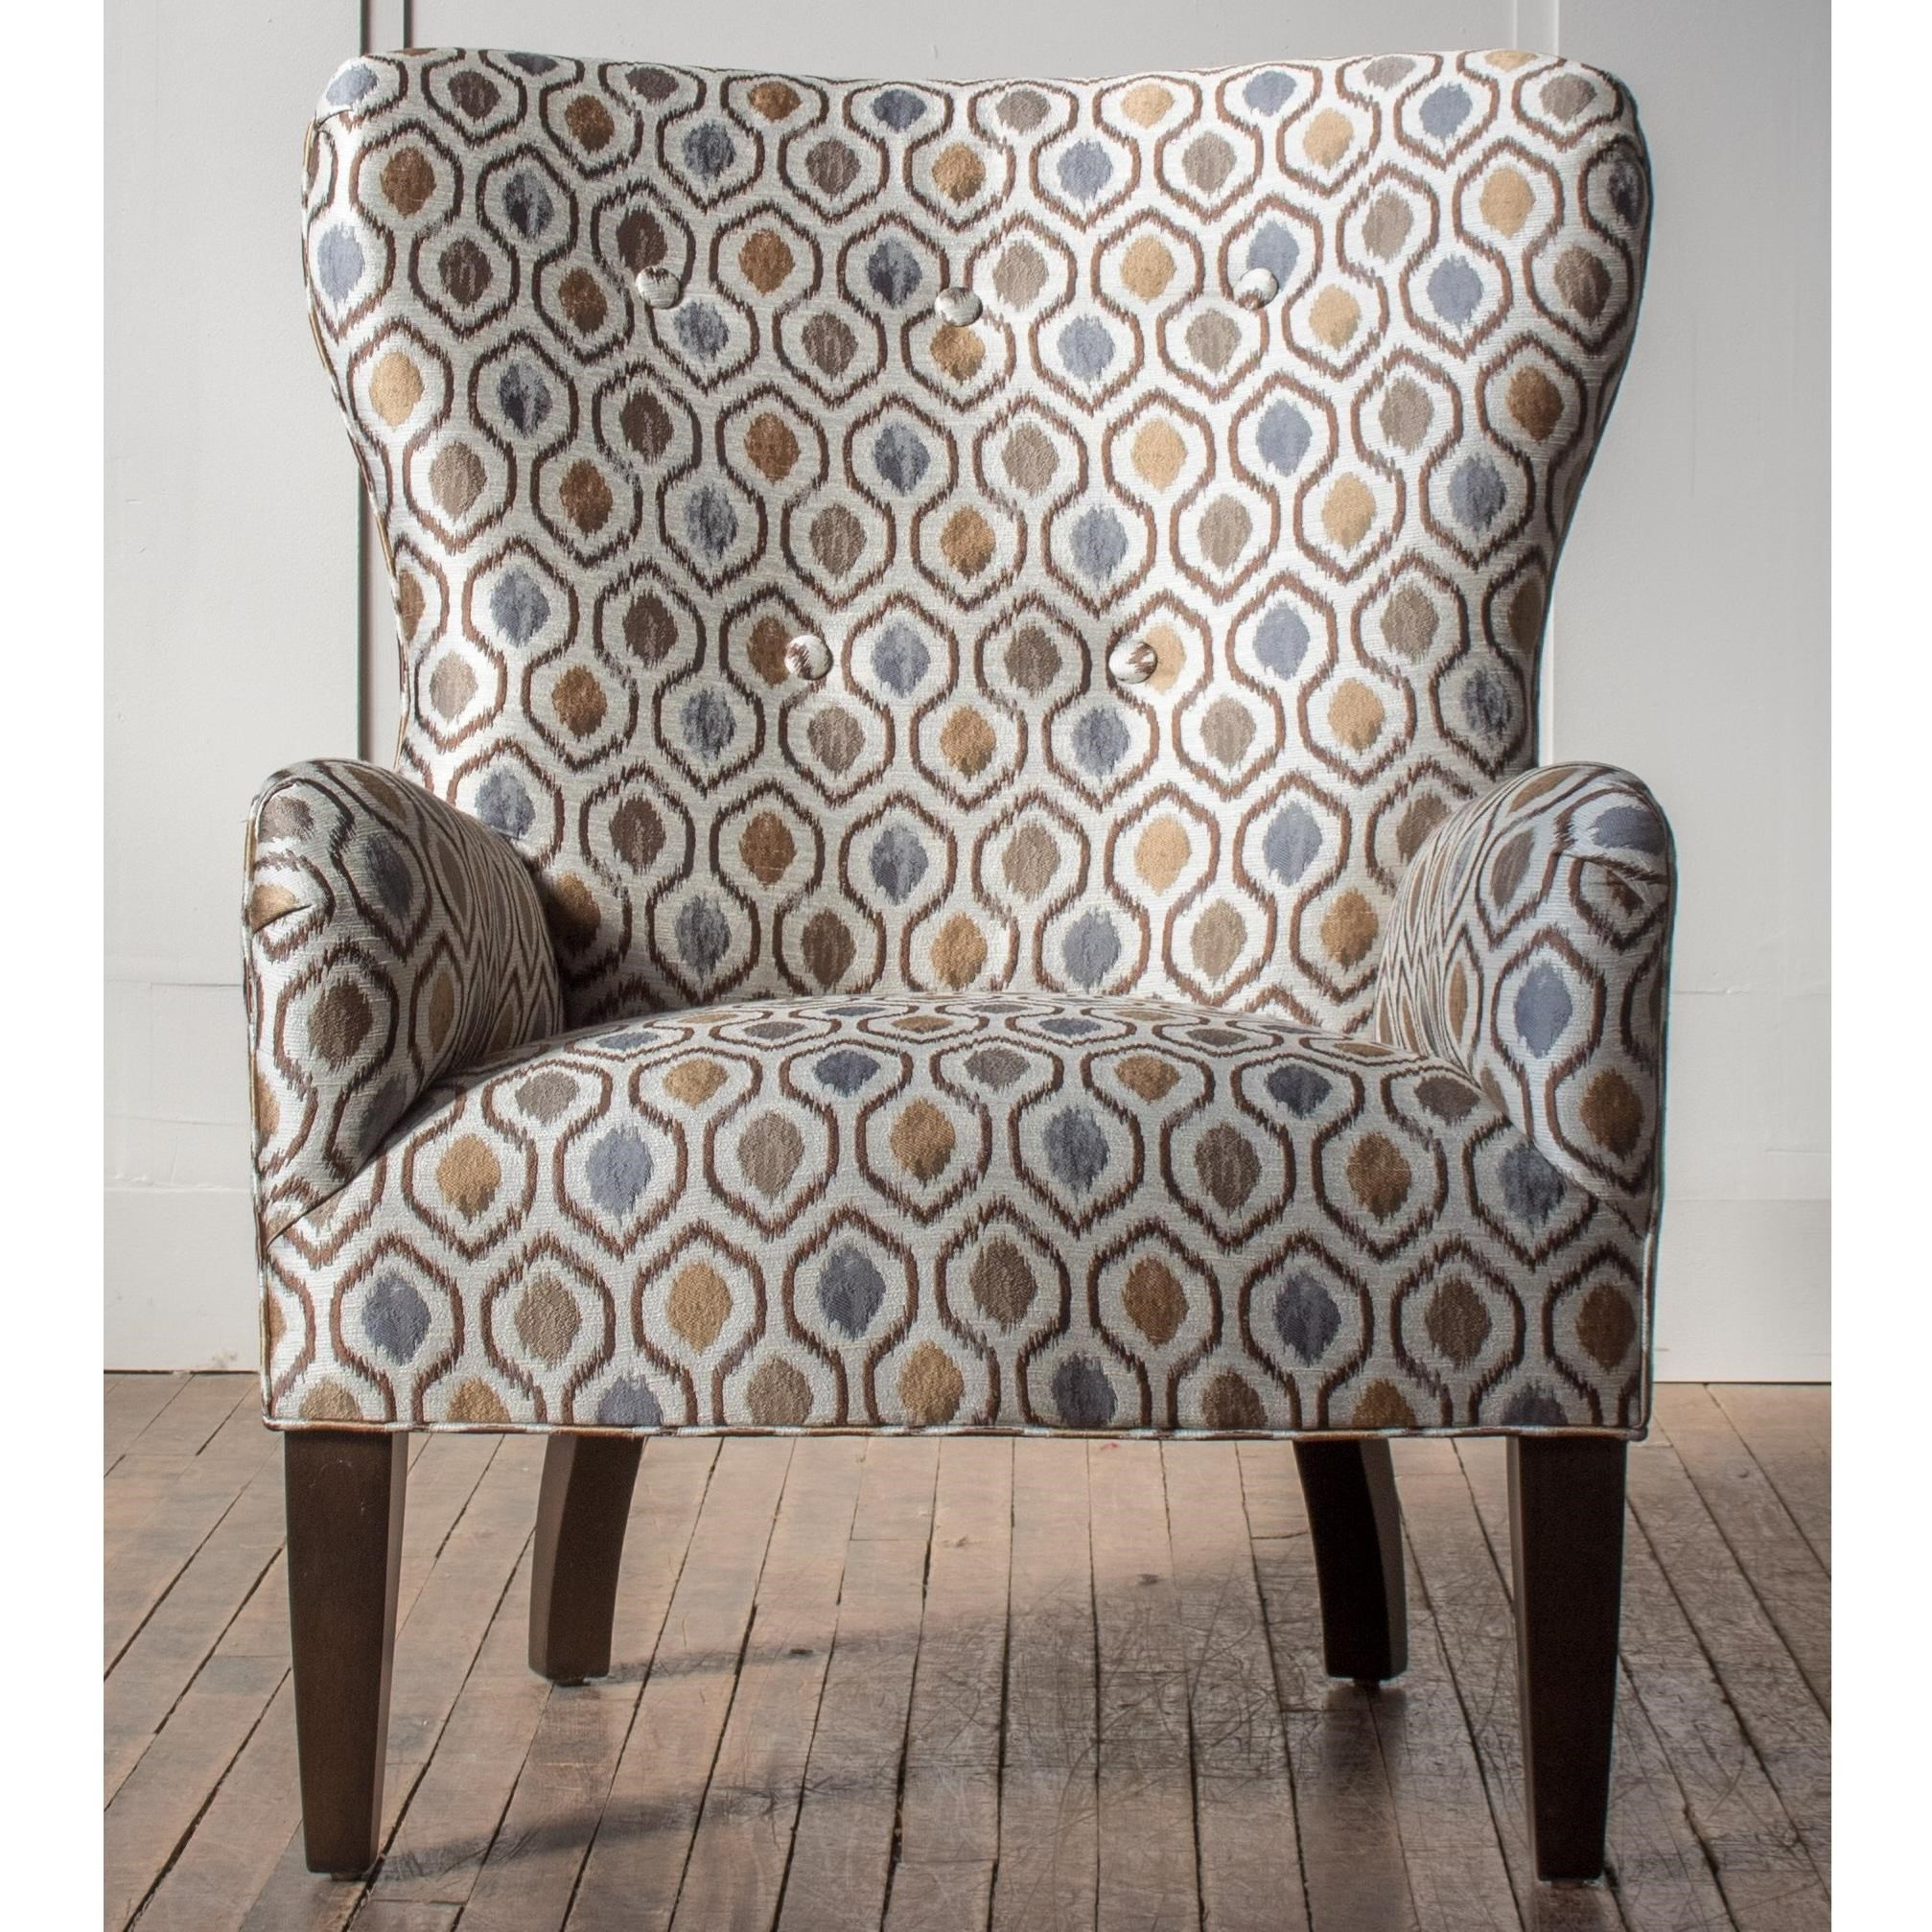 Accent Chairs Customizable Curved Back Accent Chair at Bennett's Furniture and Mattresses